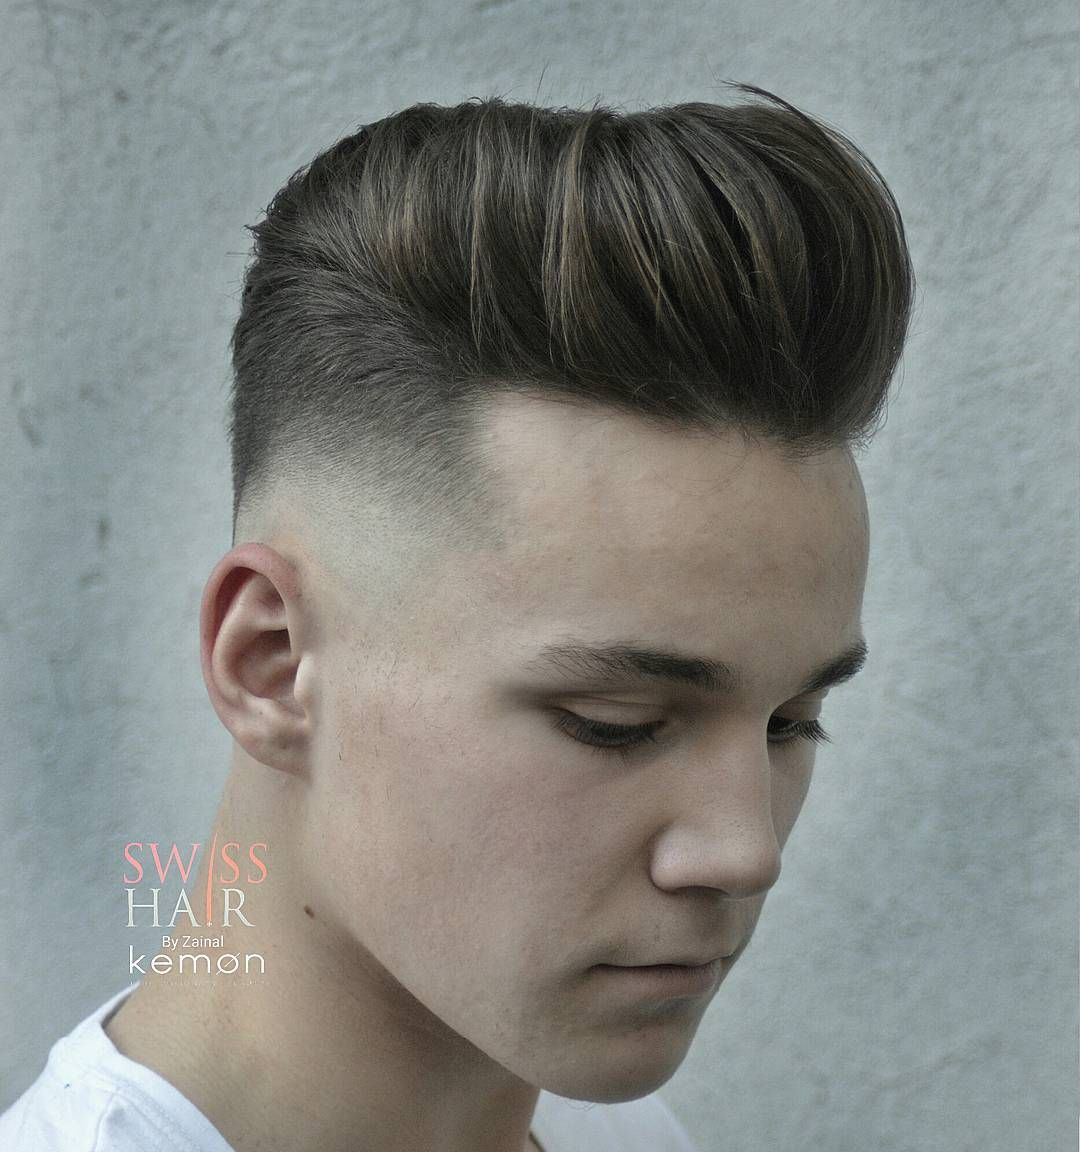 17 Cool Haircuts For Men With Thick Hair: 17 Cool Thick Hair Hairstyles + Haircuts For Men 2018